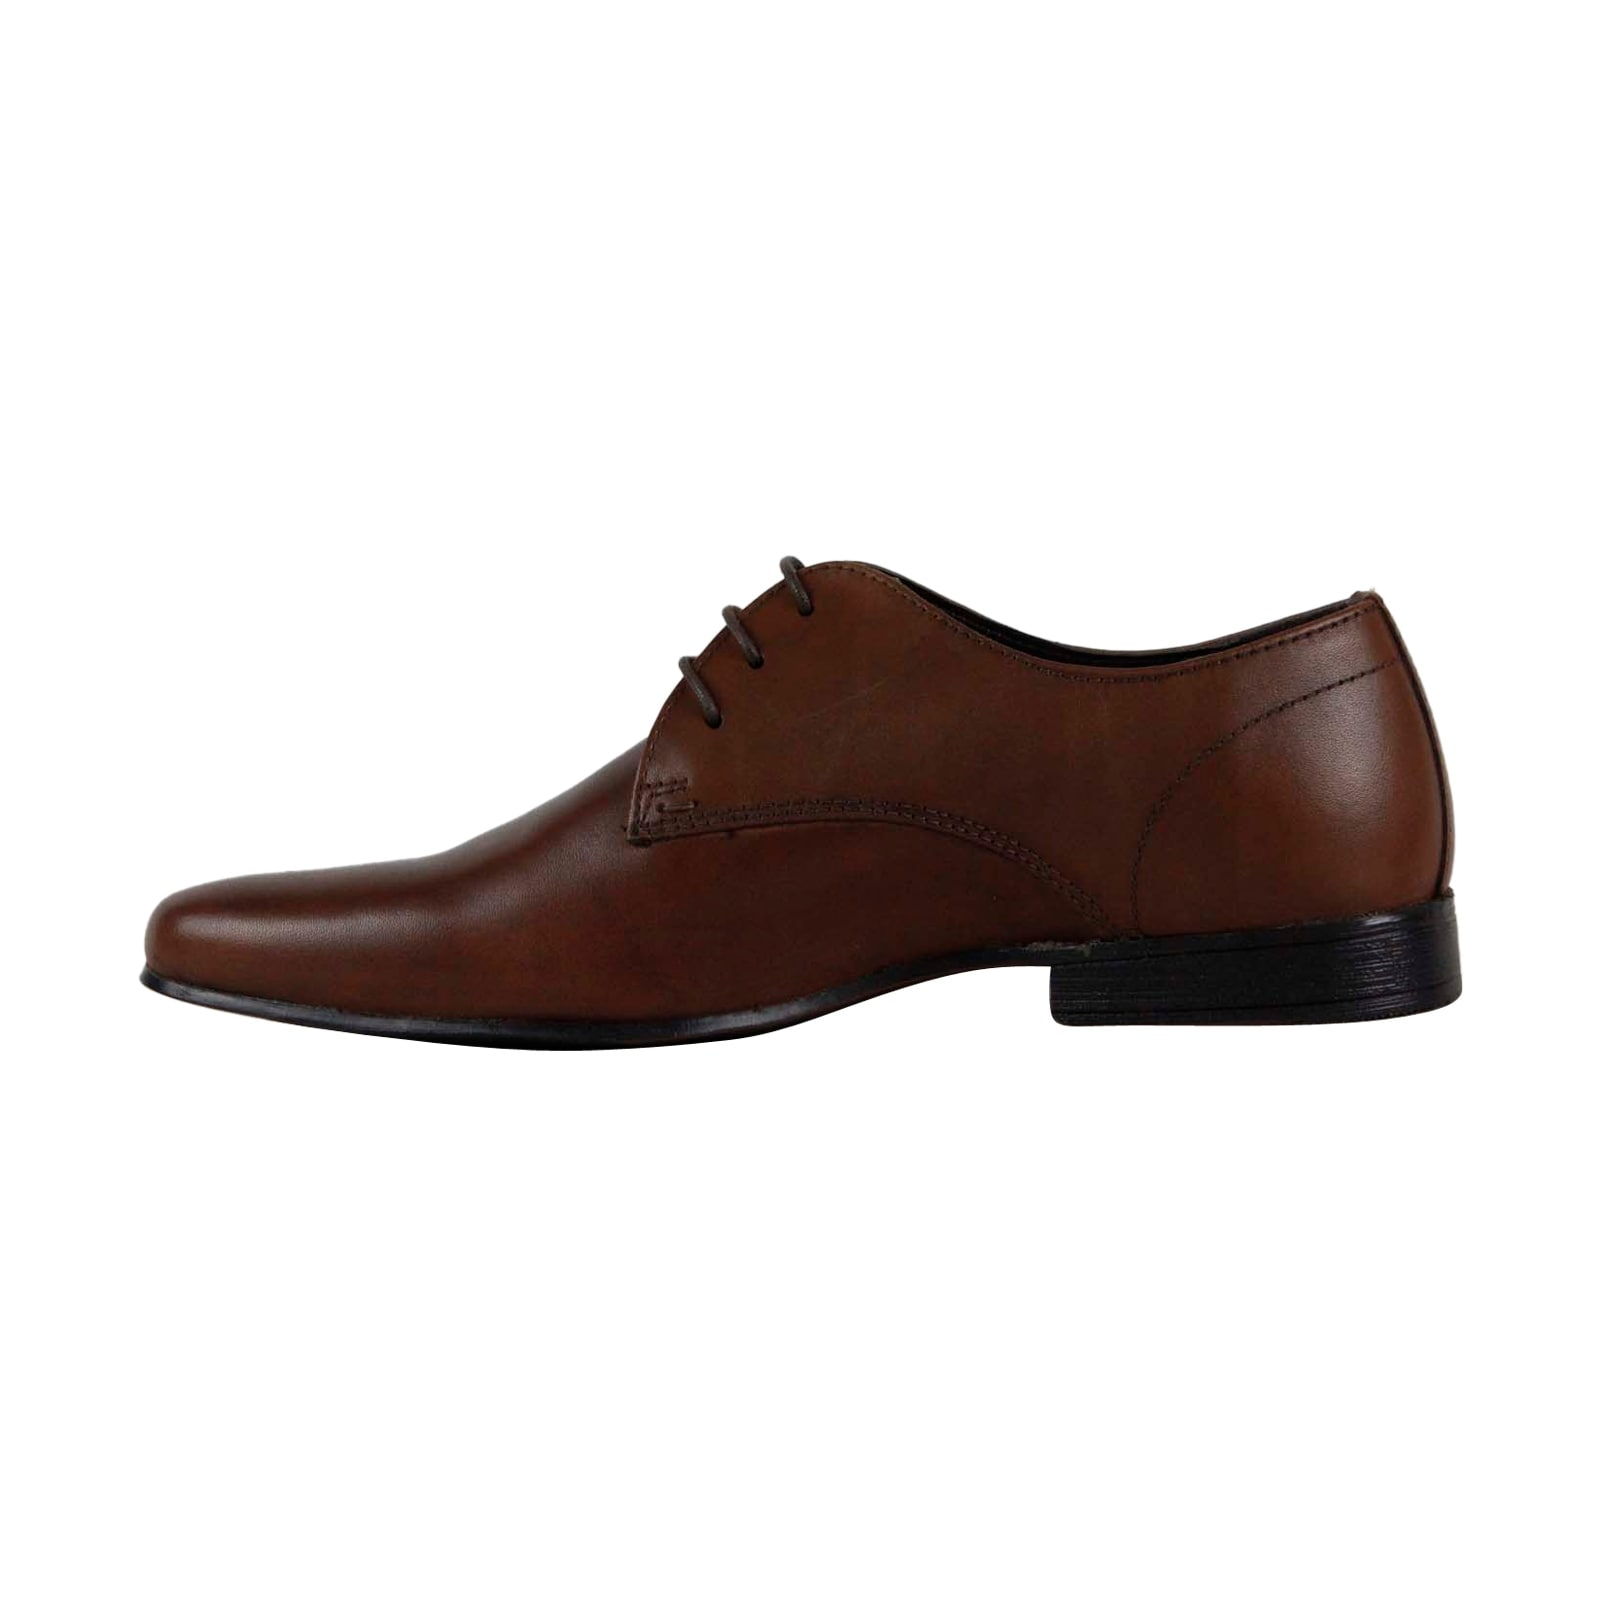 43364dd79b6a Shop Kenneth Cole Reaction Shop-Ping List Mens Brown Casual Dress Oxfords  Shoes - Free Shipping Today - Overstock - 22897879